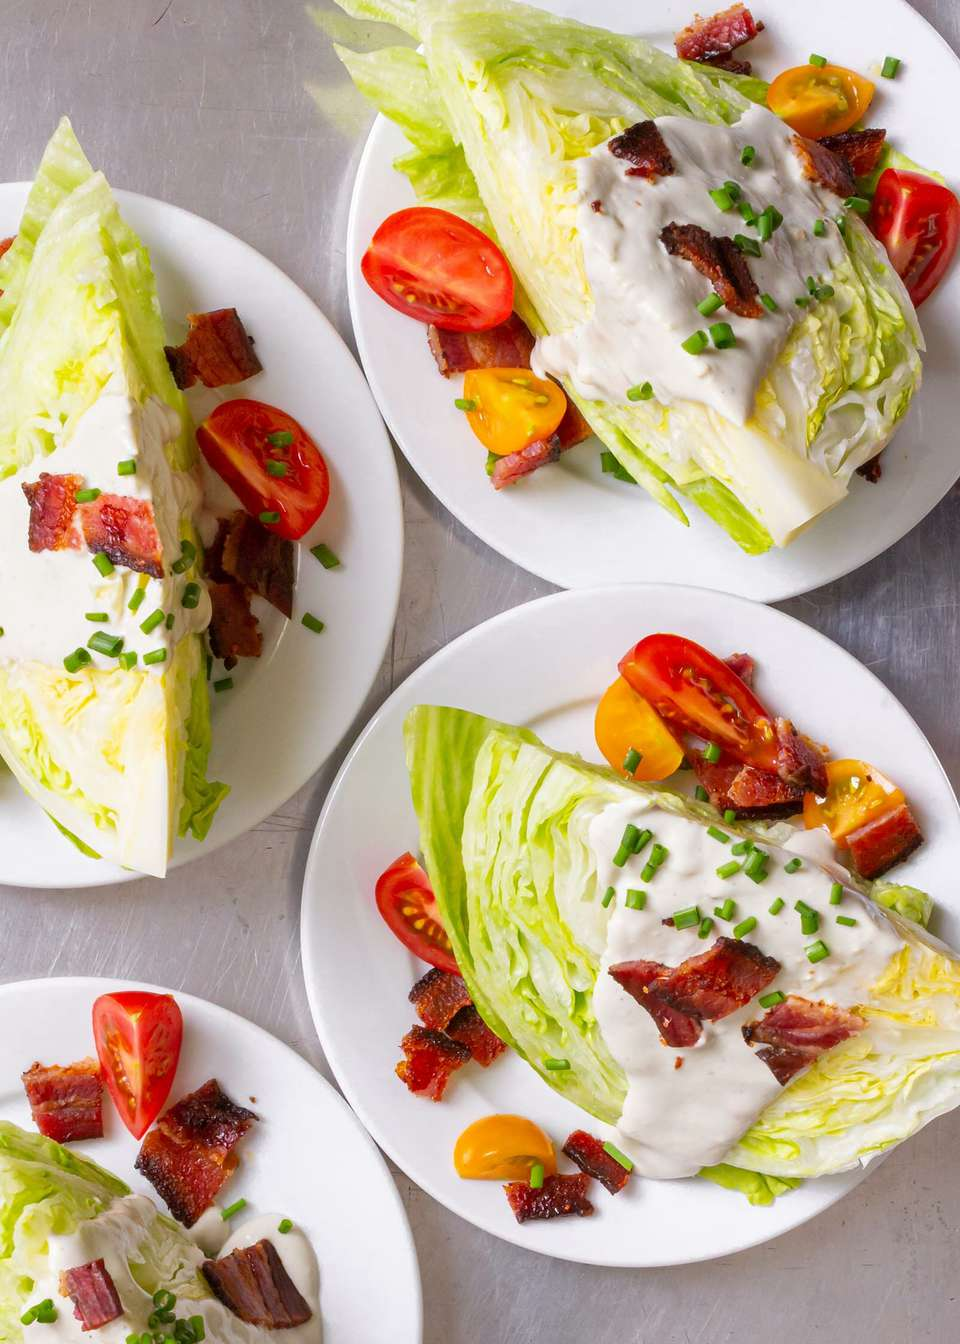 Iceberg wedge salads on white plates with blue cheese, bacon and tomatoes.